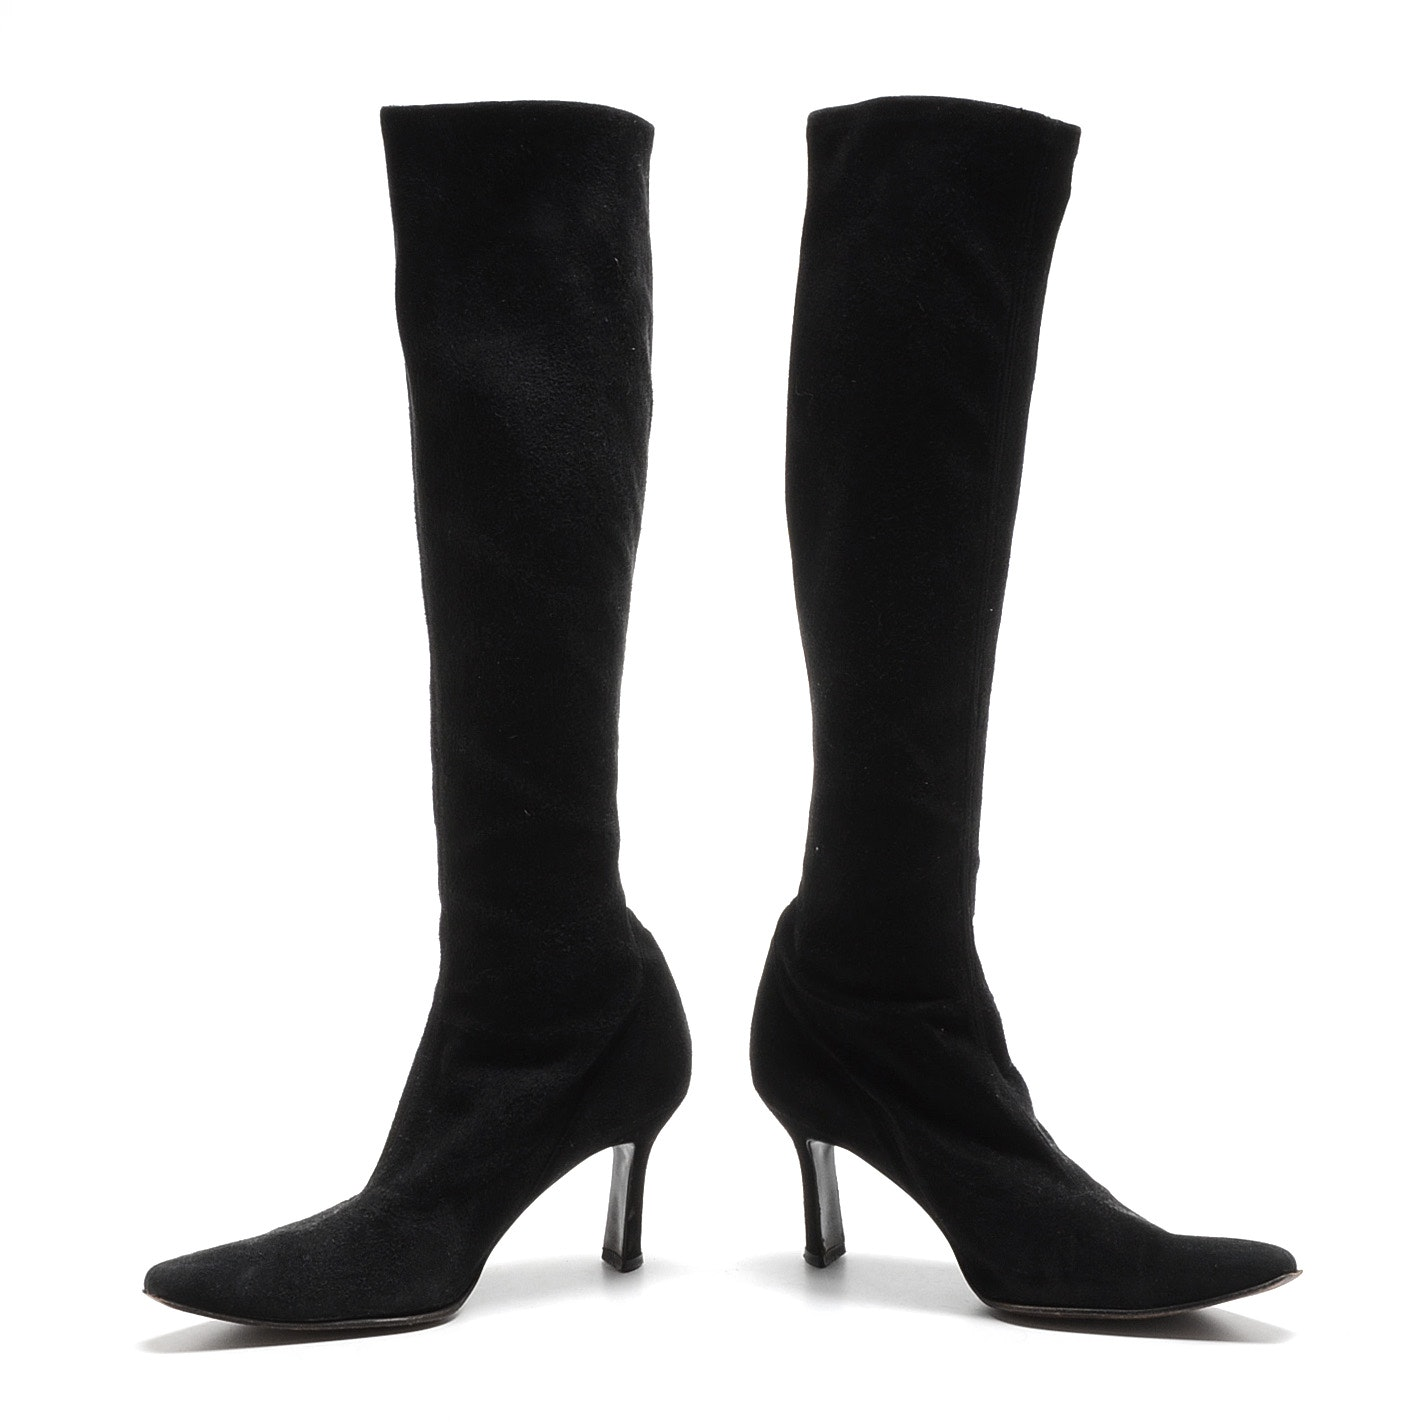 Pair of Stuart Weitzman Black Suede Leather Below-The-Knee Pull-Up Boots